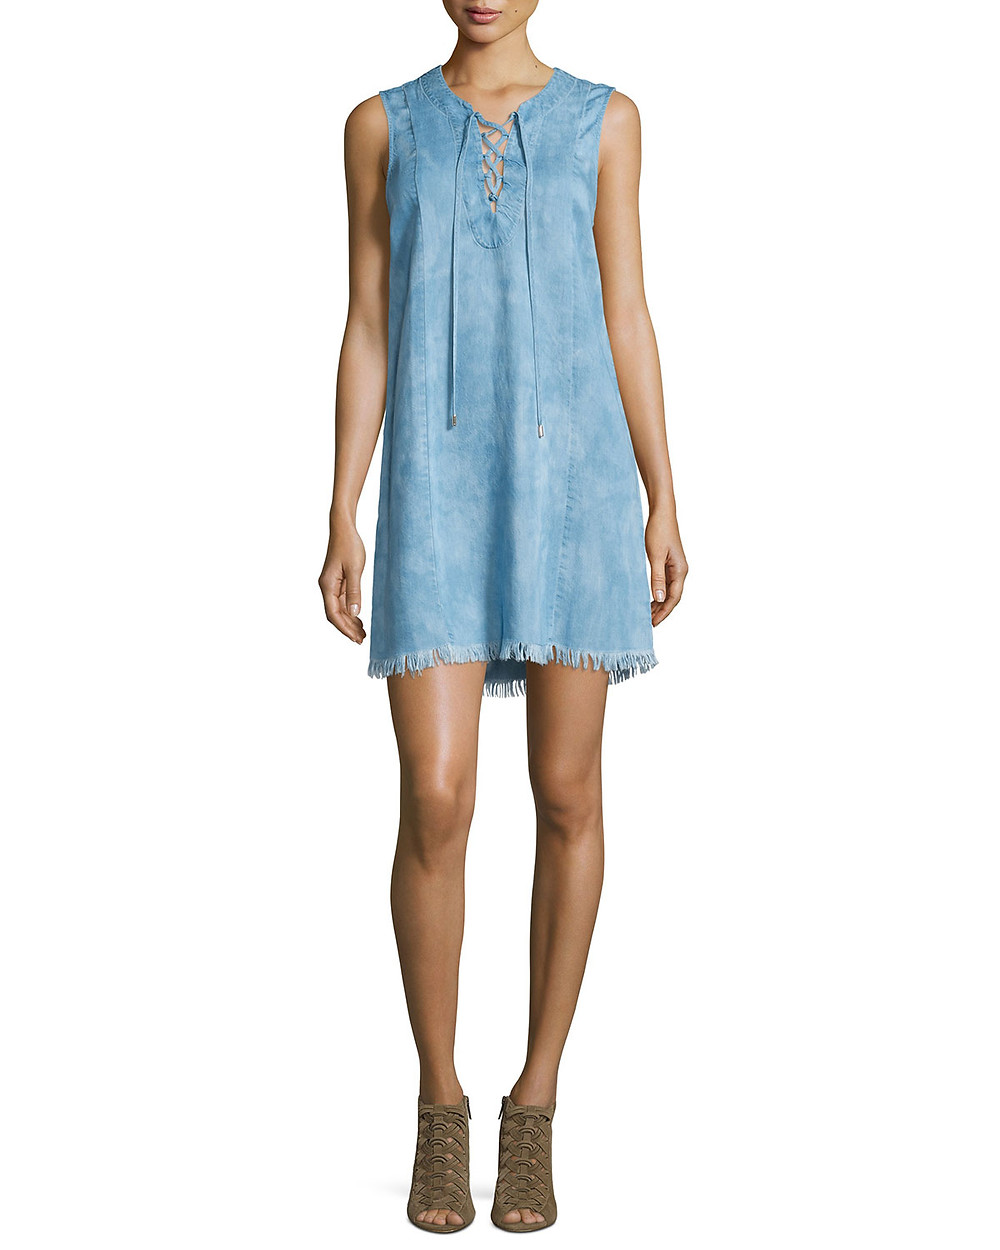 7 For All Mankind sleeveless lace-up denim dress $198